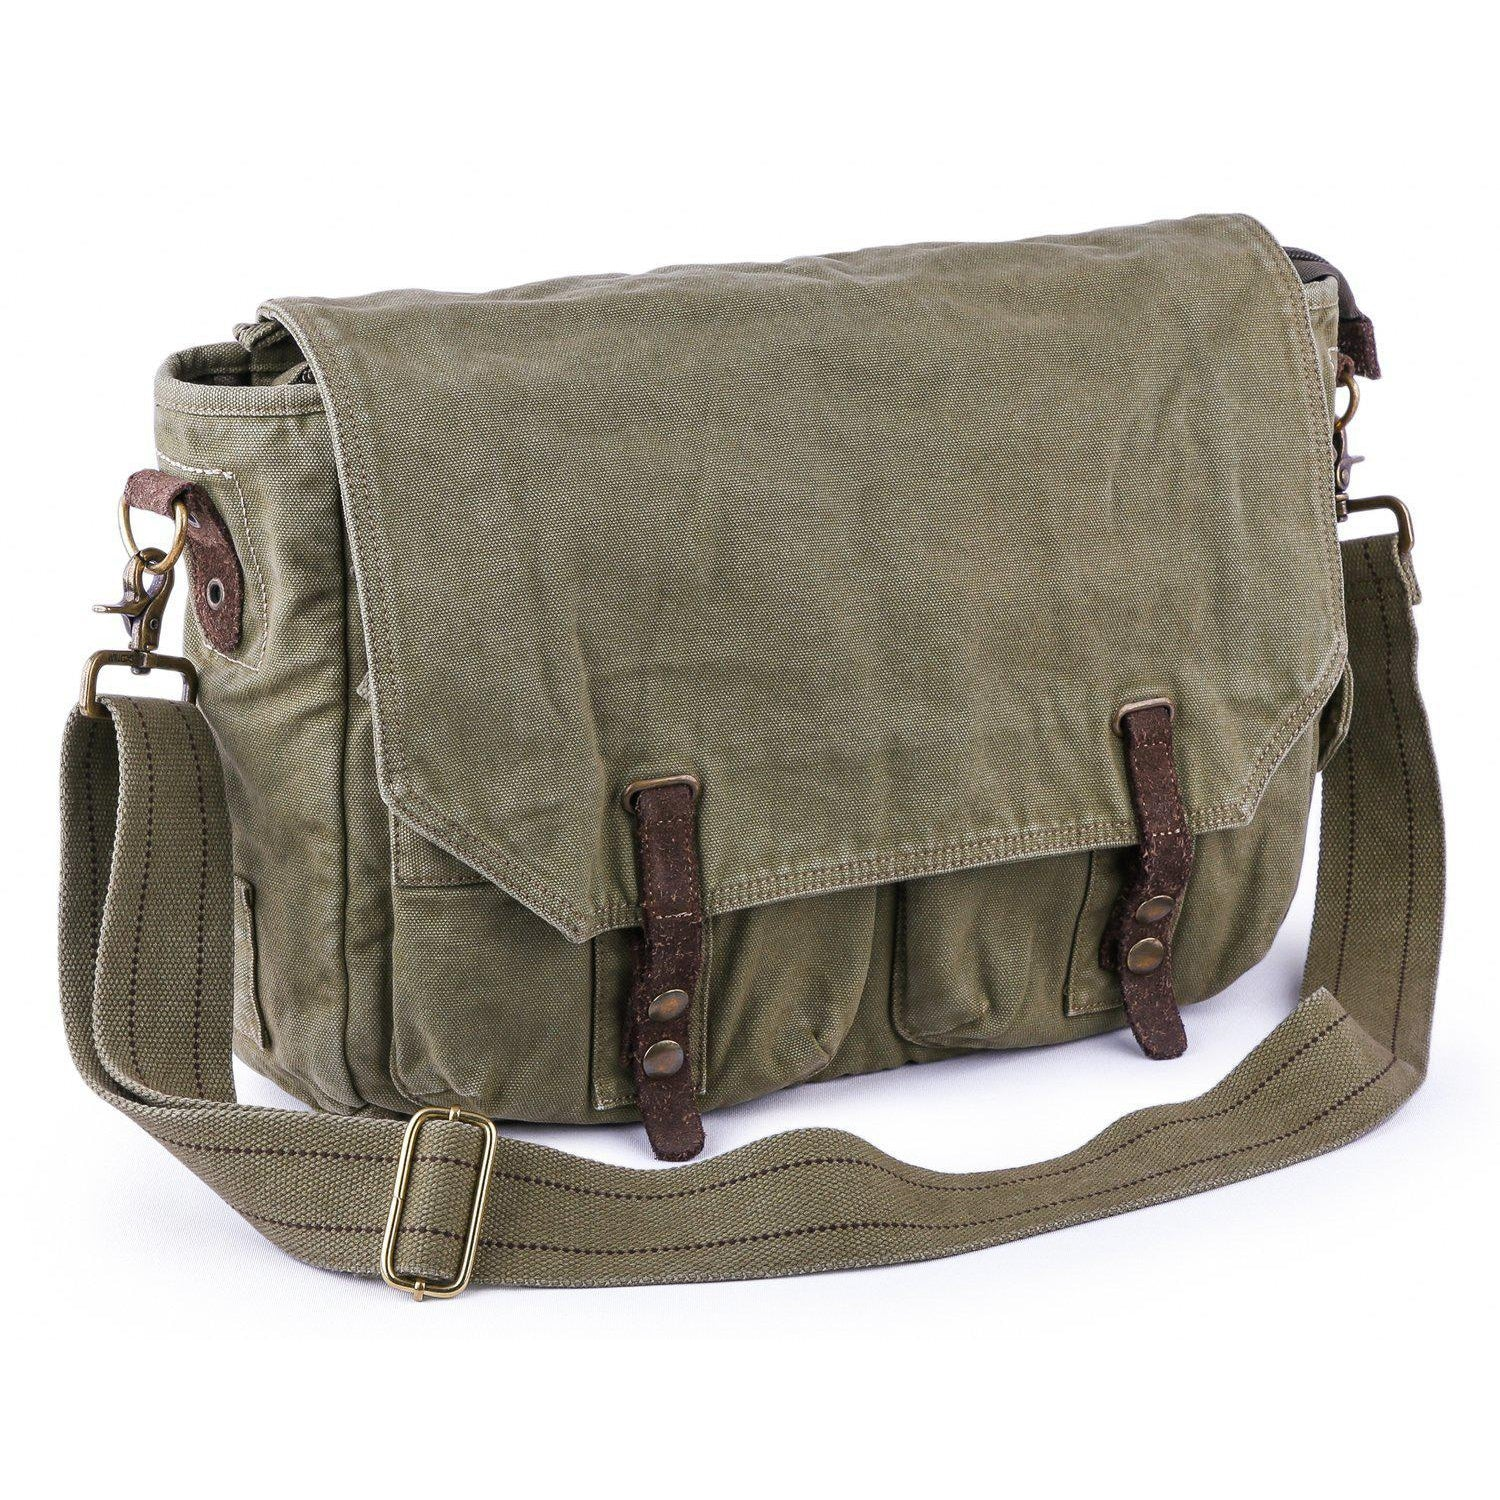 dba9b21bc1 Gootium Vintage Canvas Messenger Bag  60403